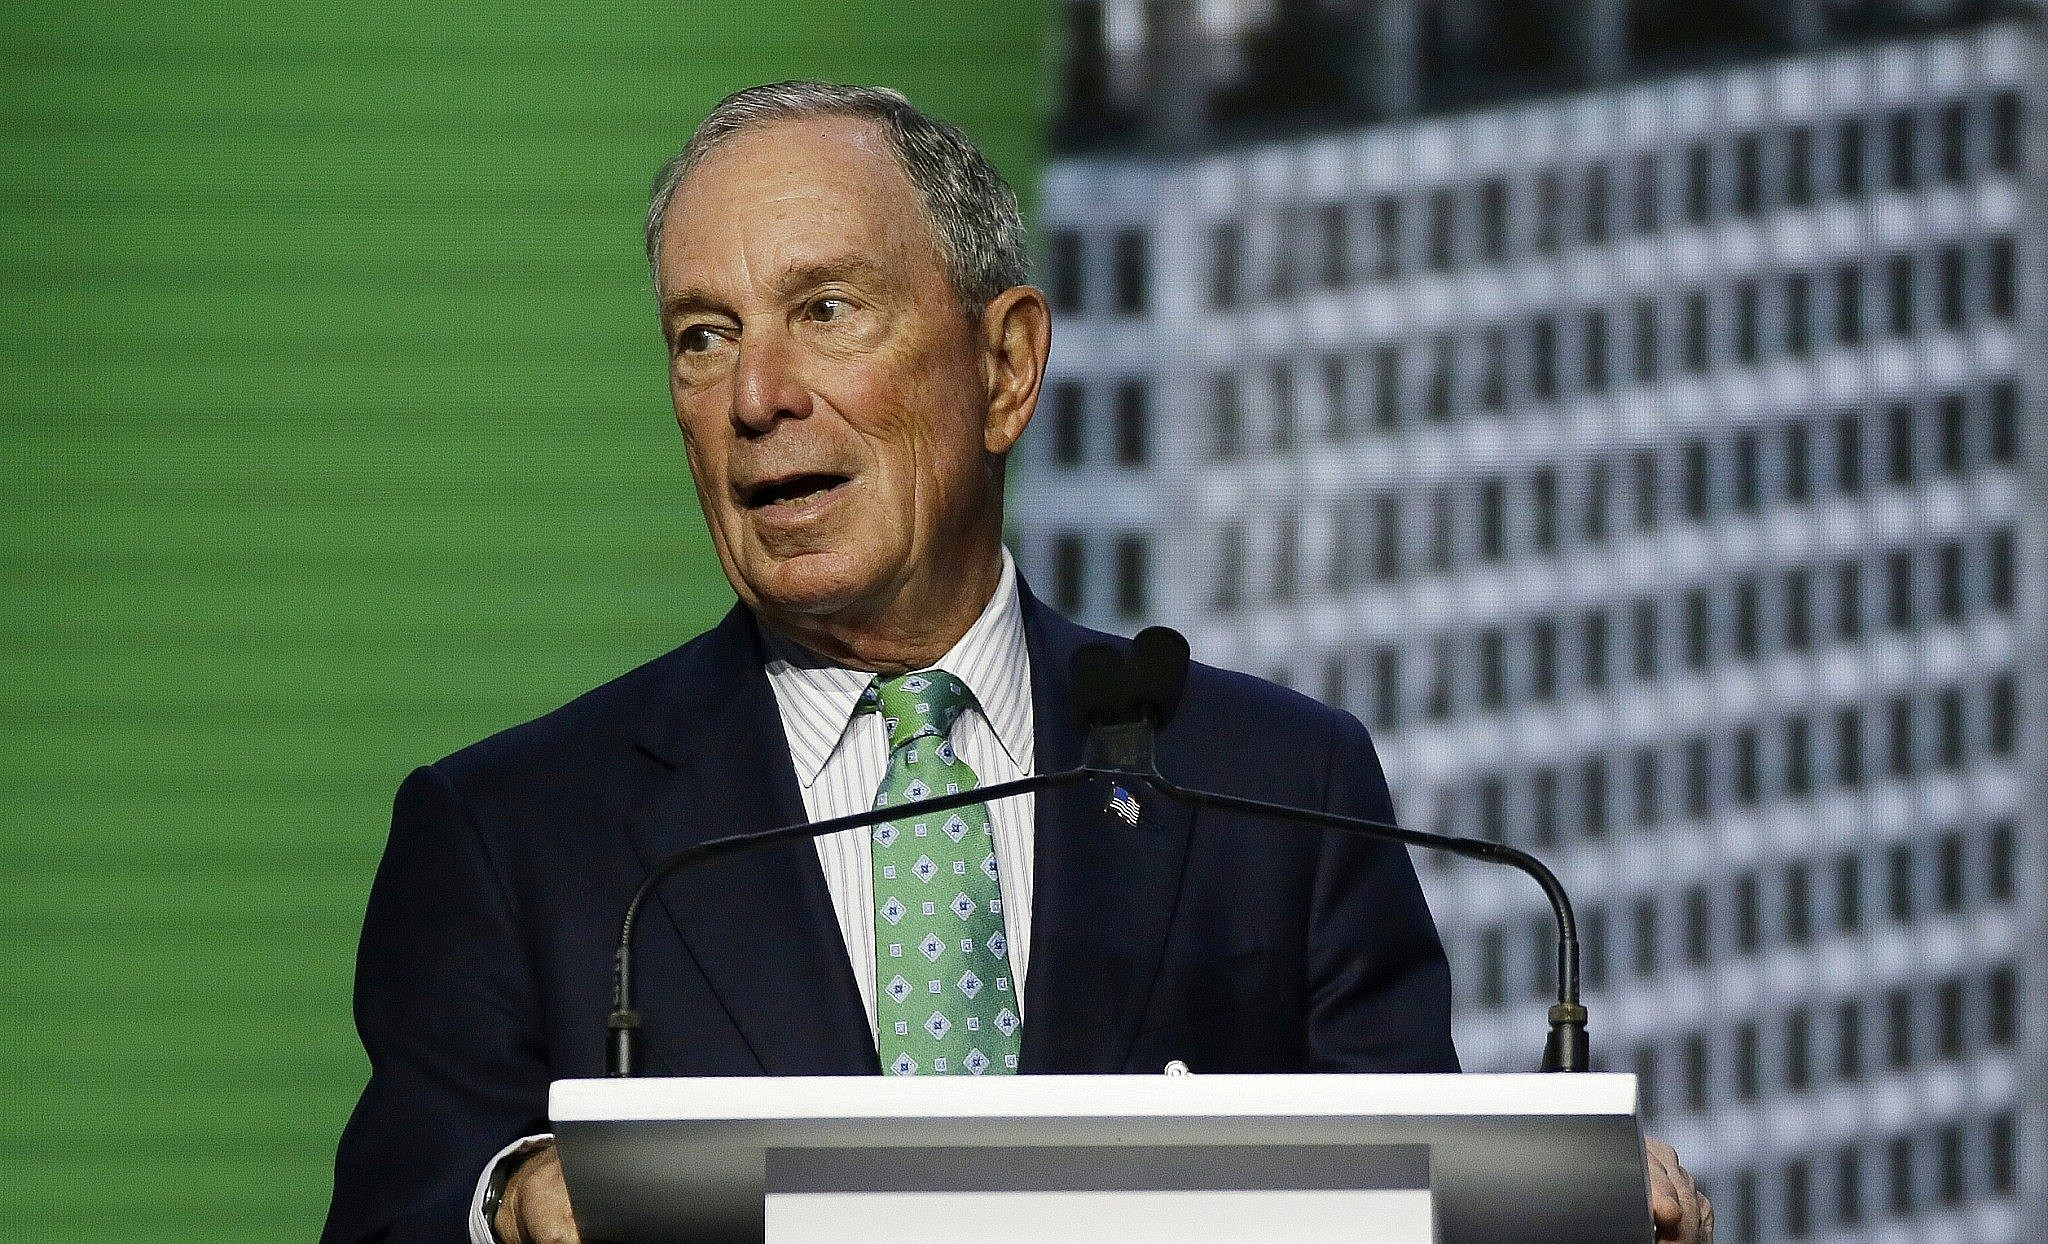 Michael Bloomberg becomes Democrat again, looks at presidential run